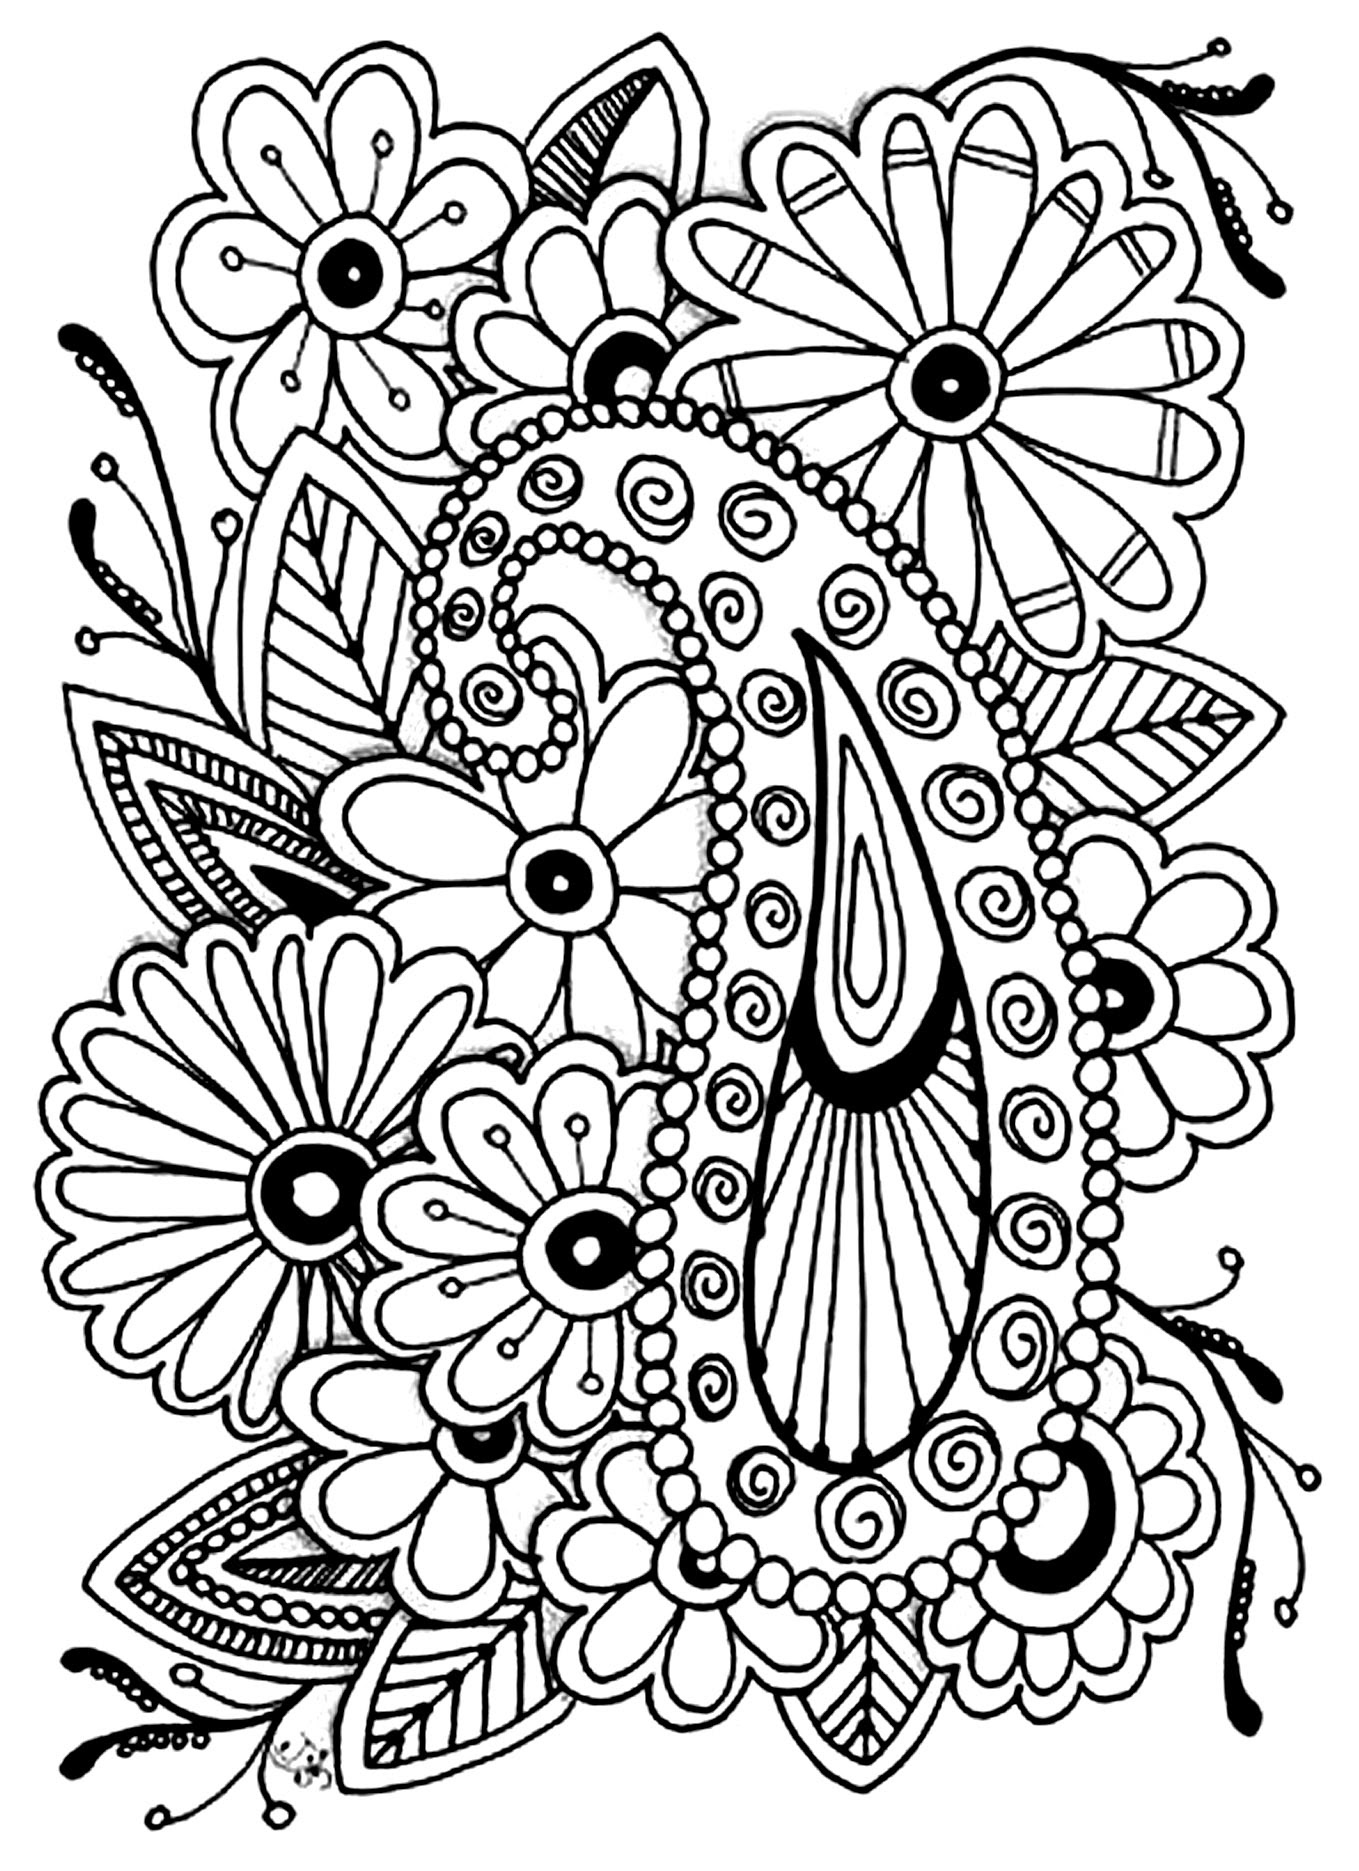 Flowers paisley - Flowers Adult Coloring Pages